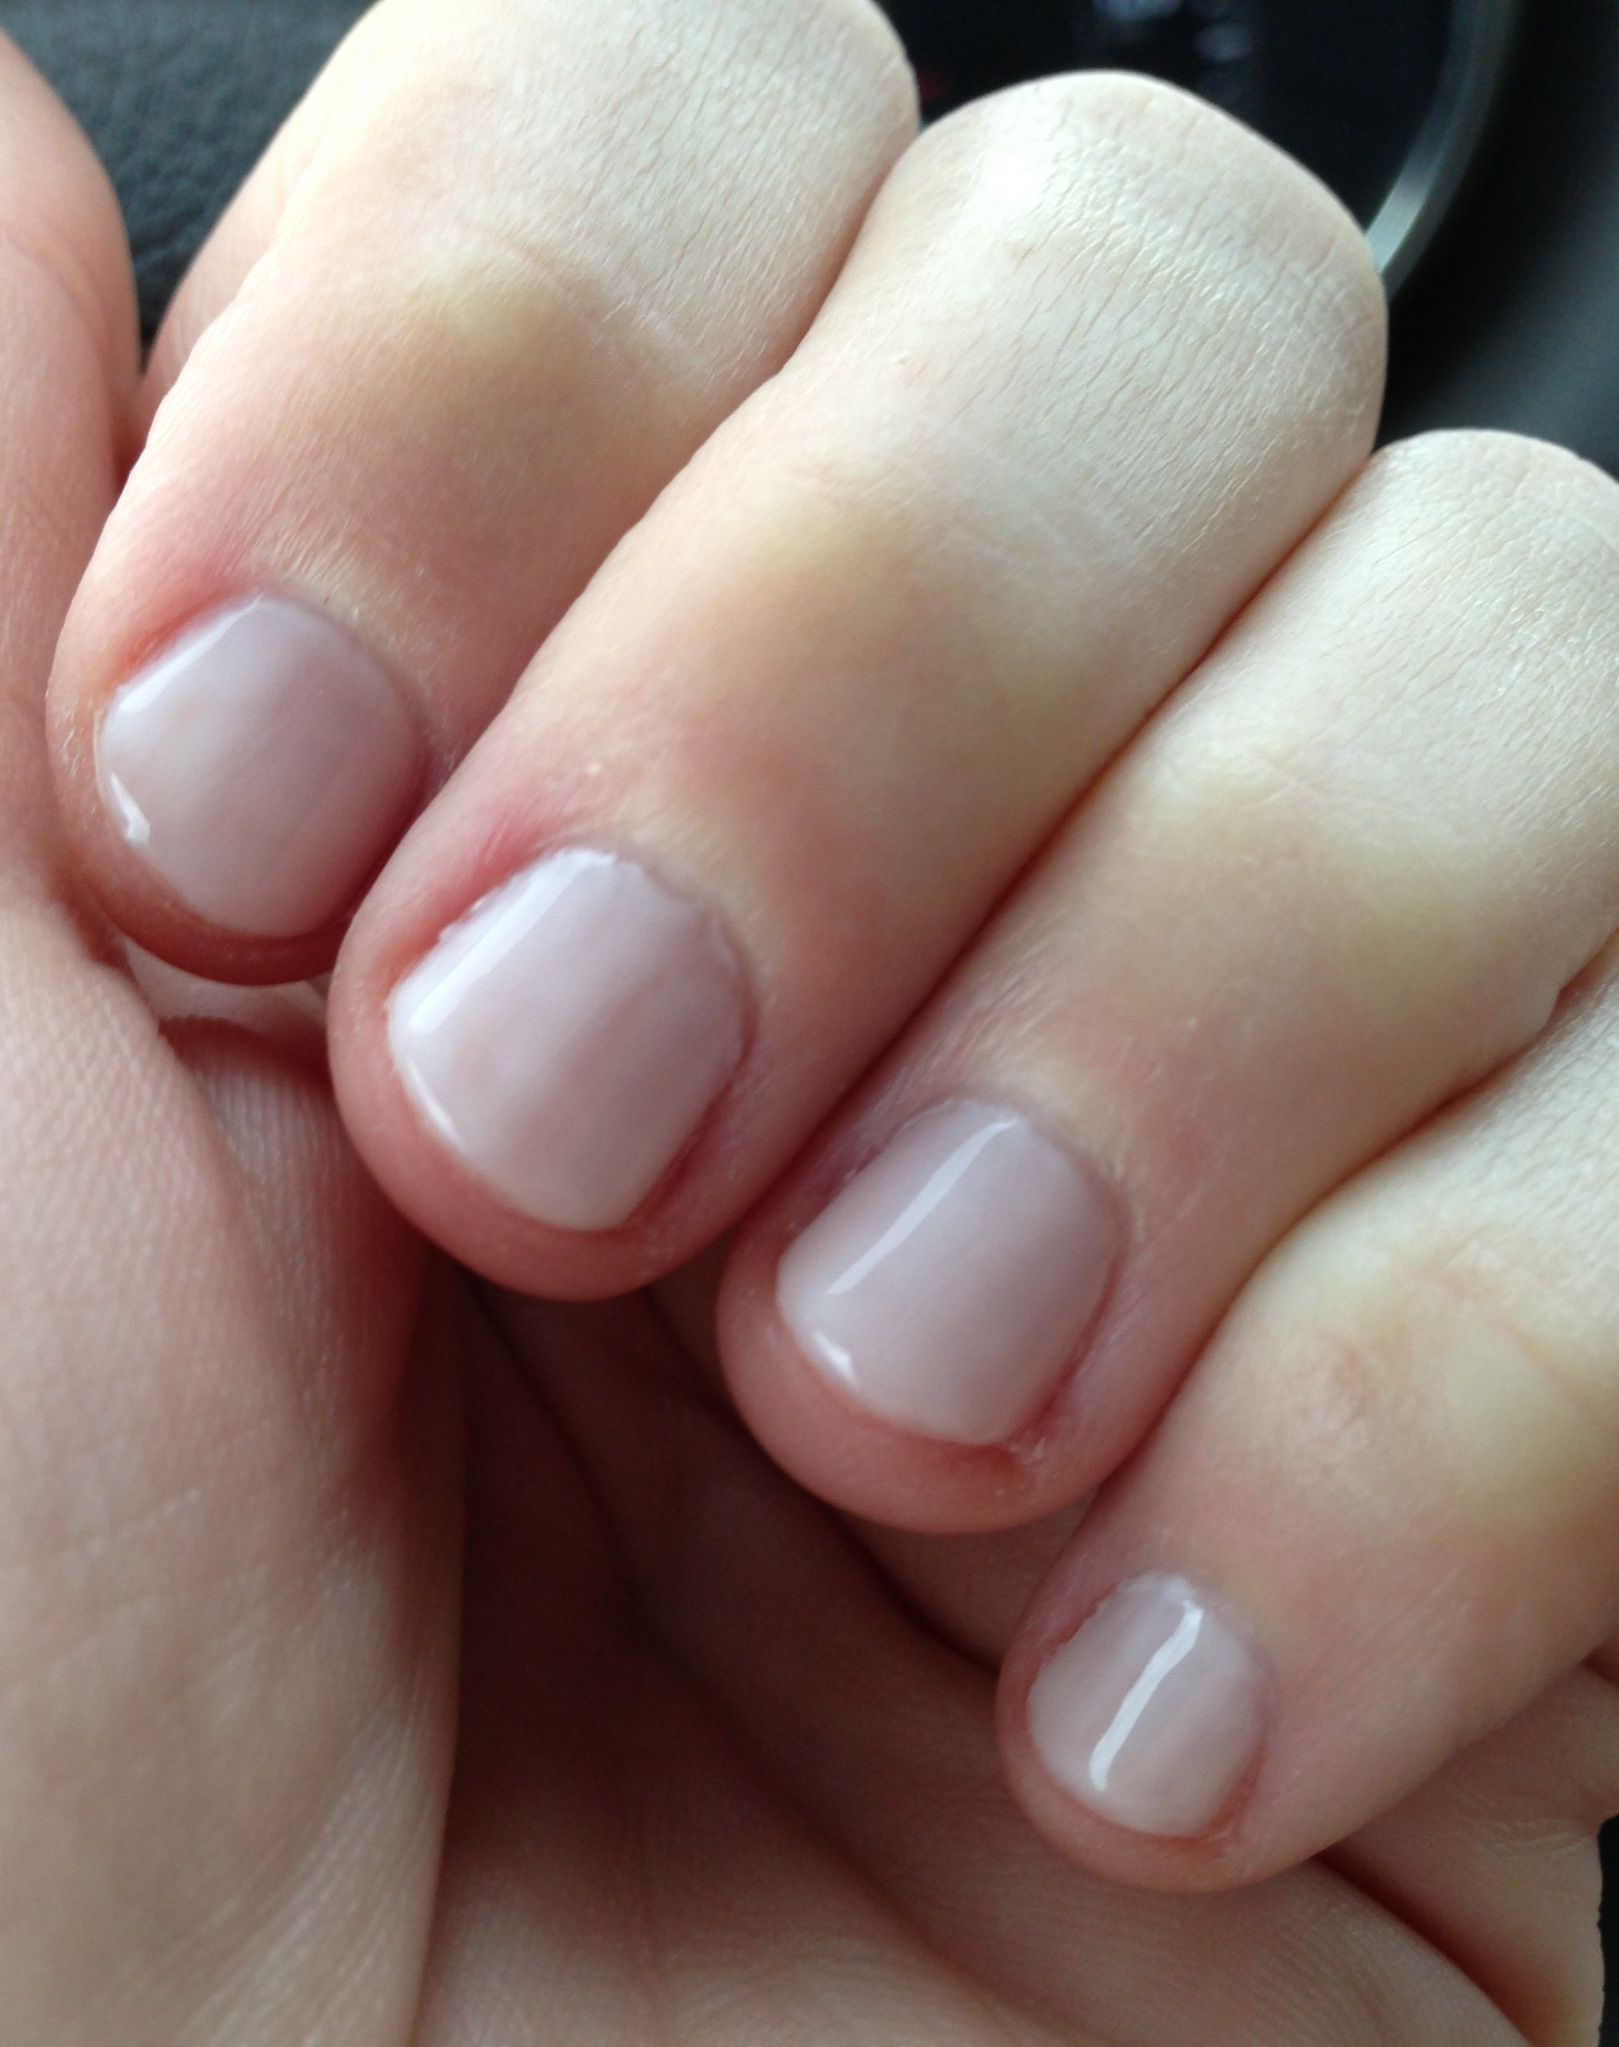 Cnd Shellac Romantique Layered With Studio White As The 1st